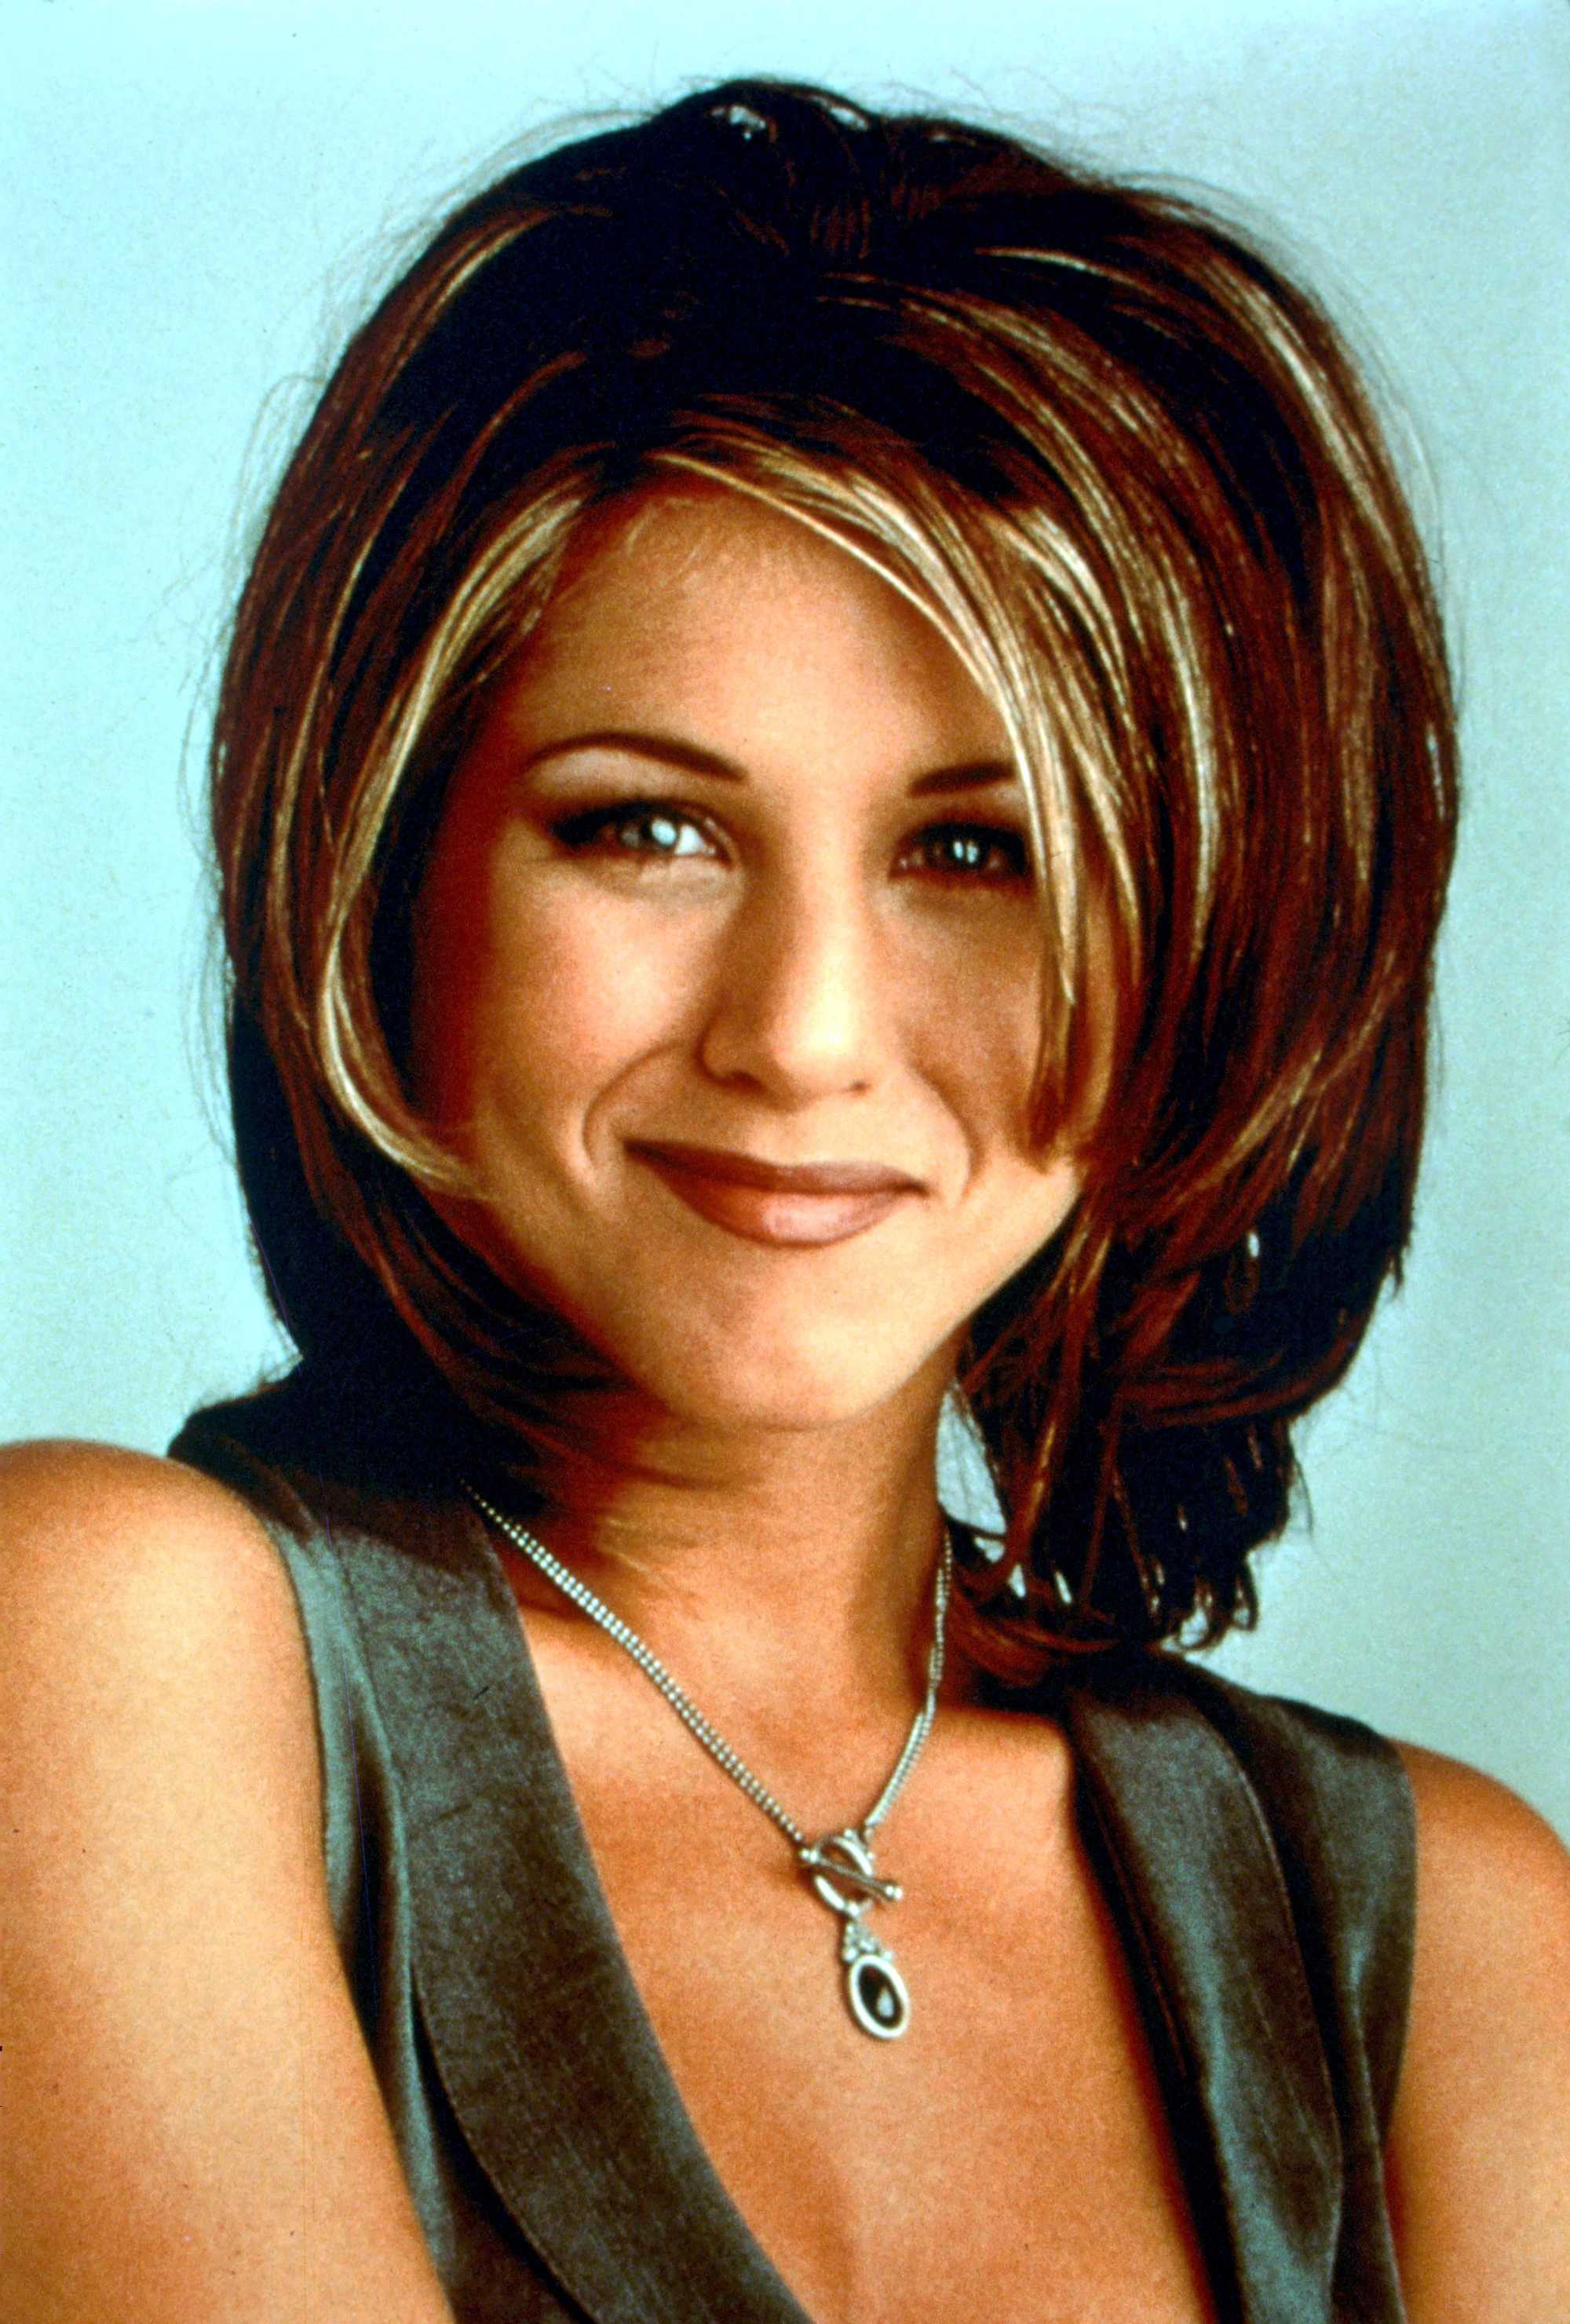 Rachel haircut: Jennifer Aniston with shoulder length volume bob with long layers and side fringe 90s hairstyle.